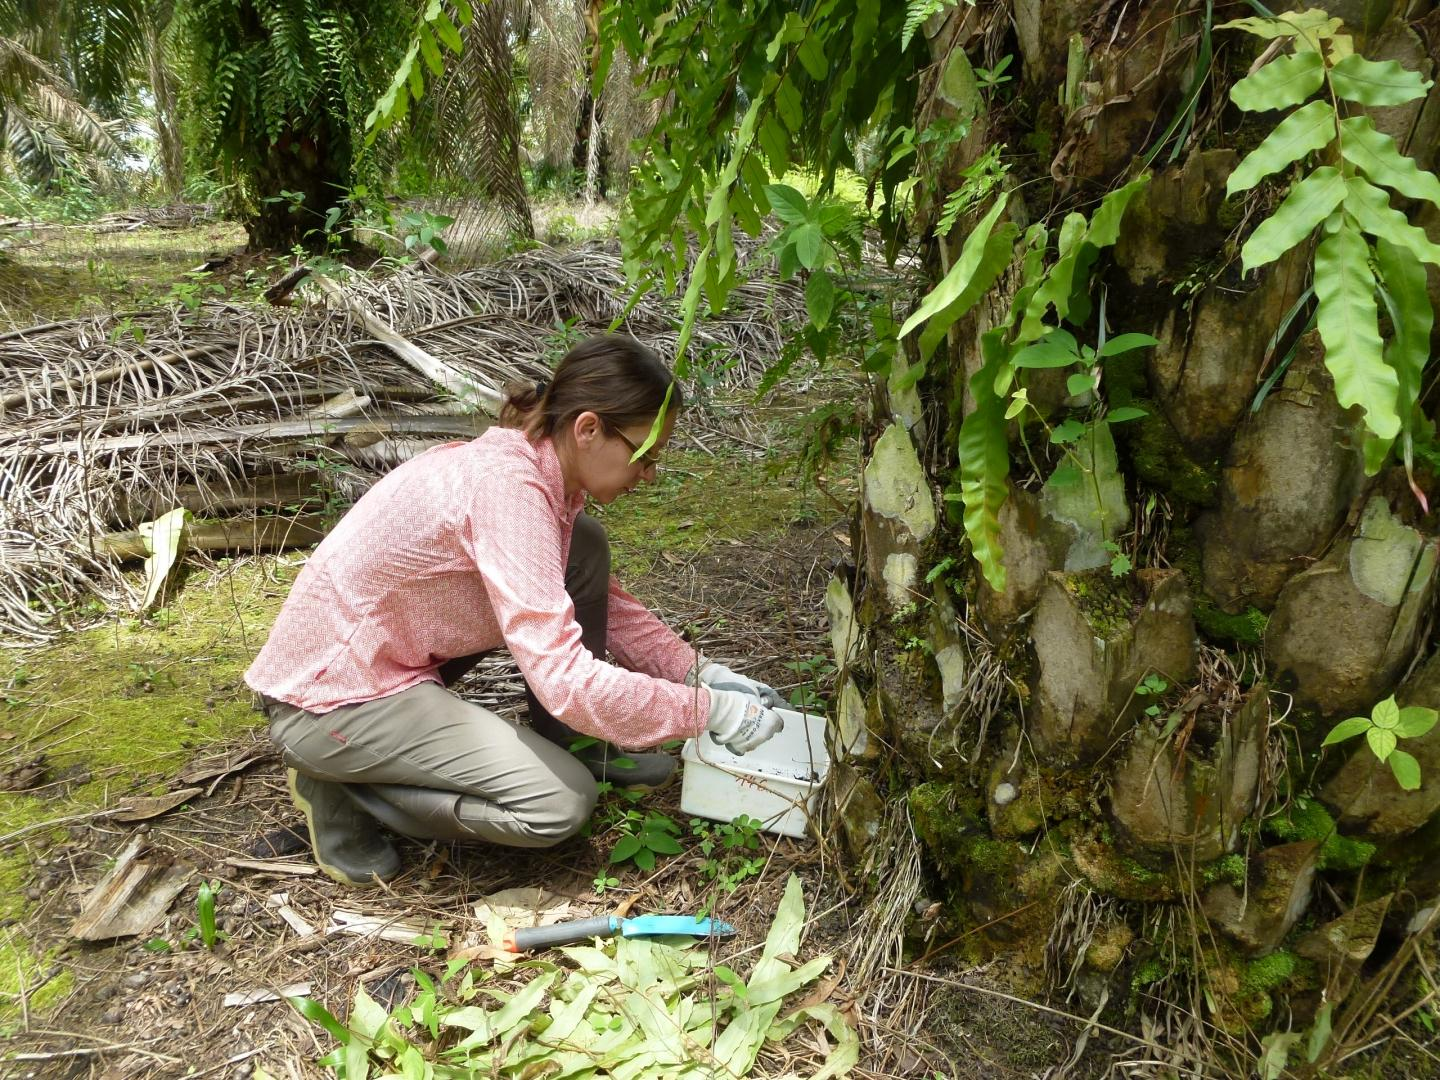 Female Researcher in Forest Clearning with Trowel and Container